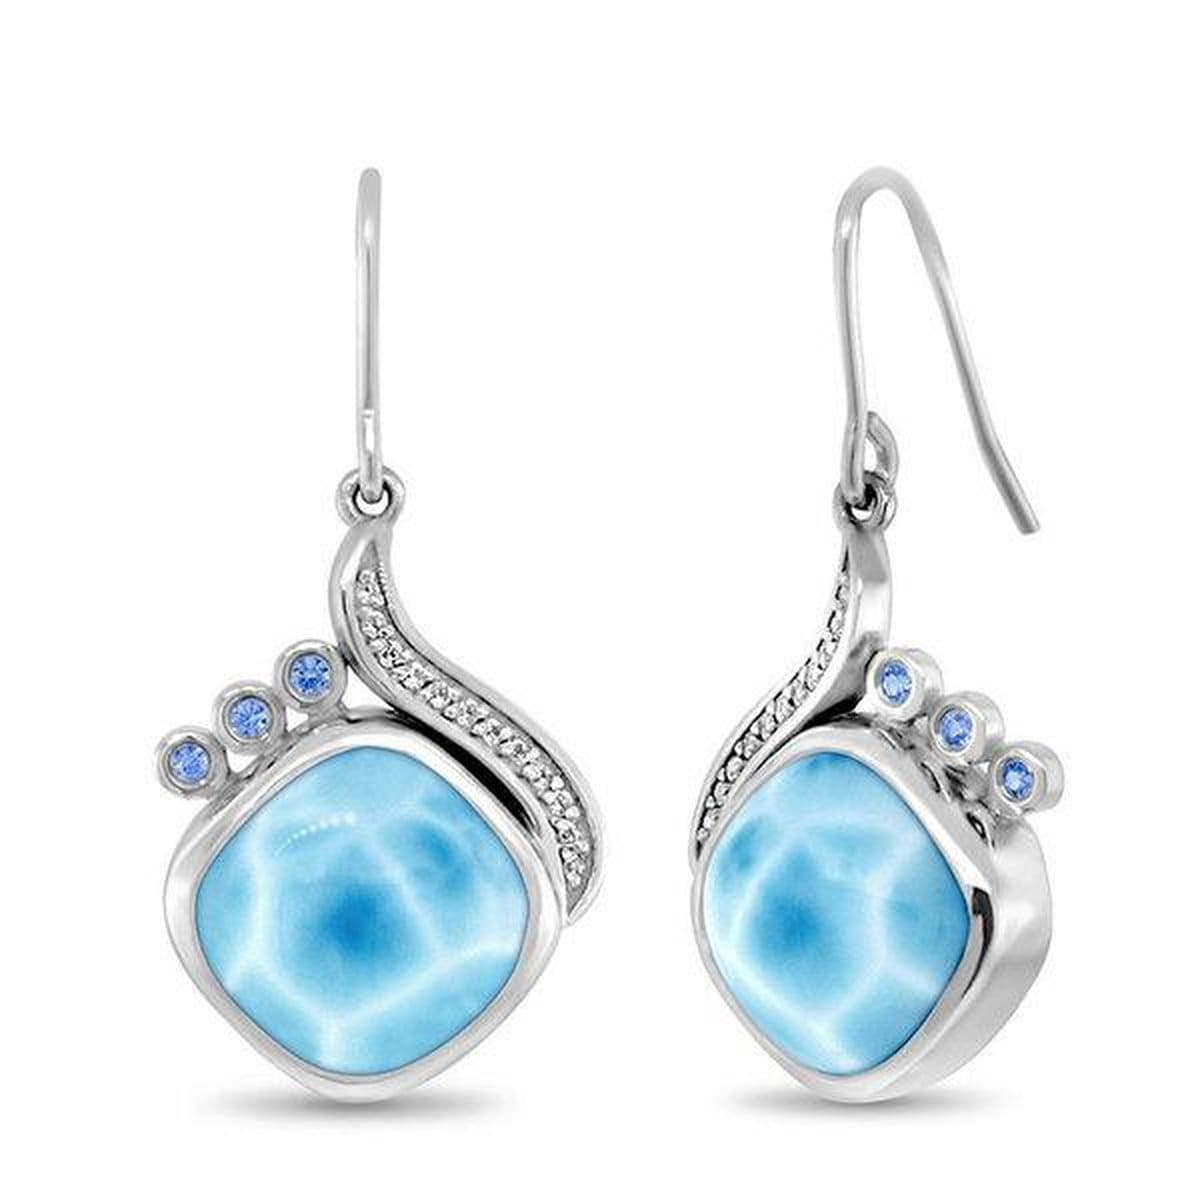 Aurora Earrings - Eauro00-00-Marahlago Larimar-Renee Taylor Gallery